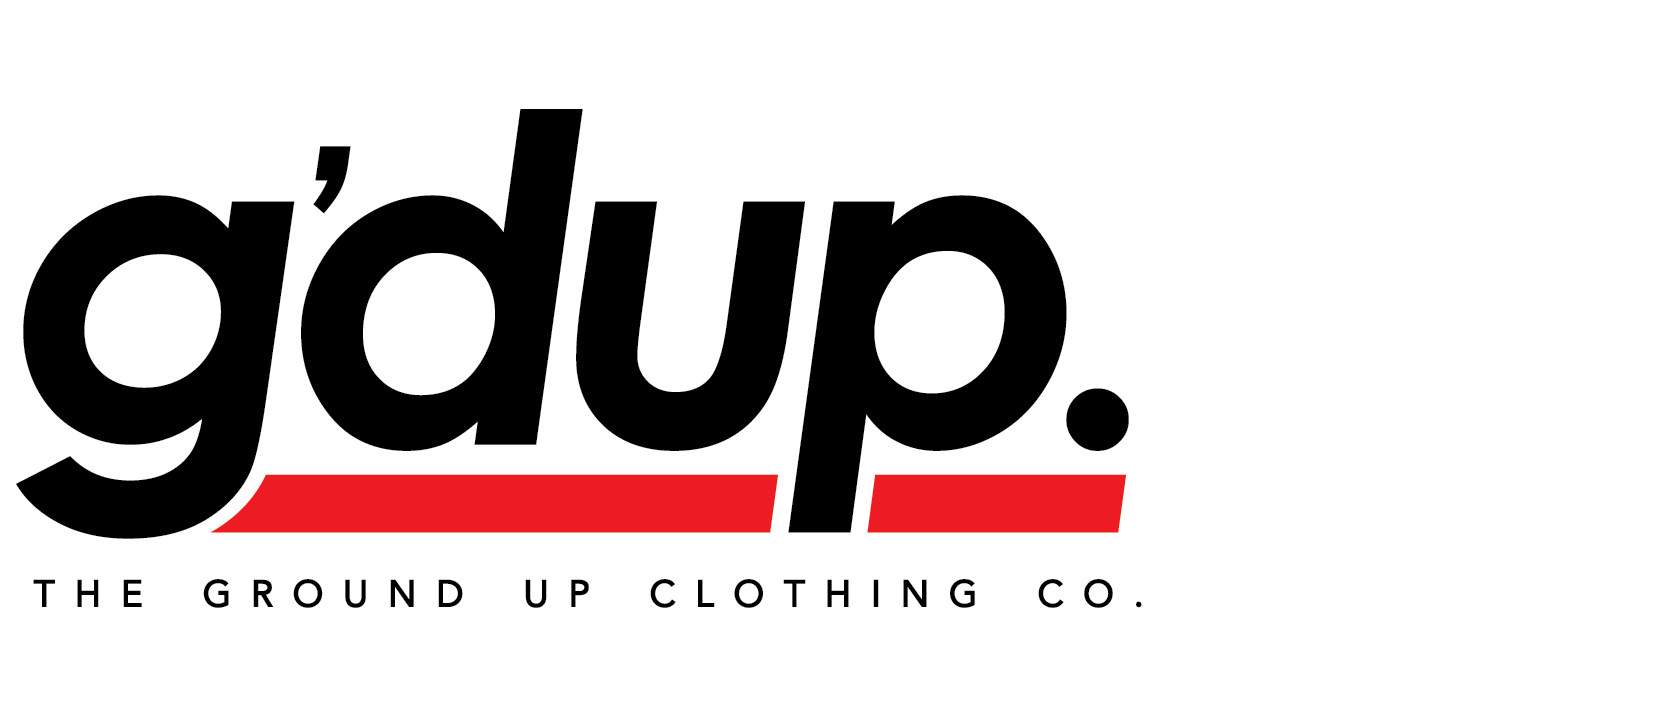 The Ground Up Clothing Co.